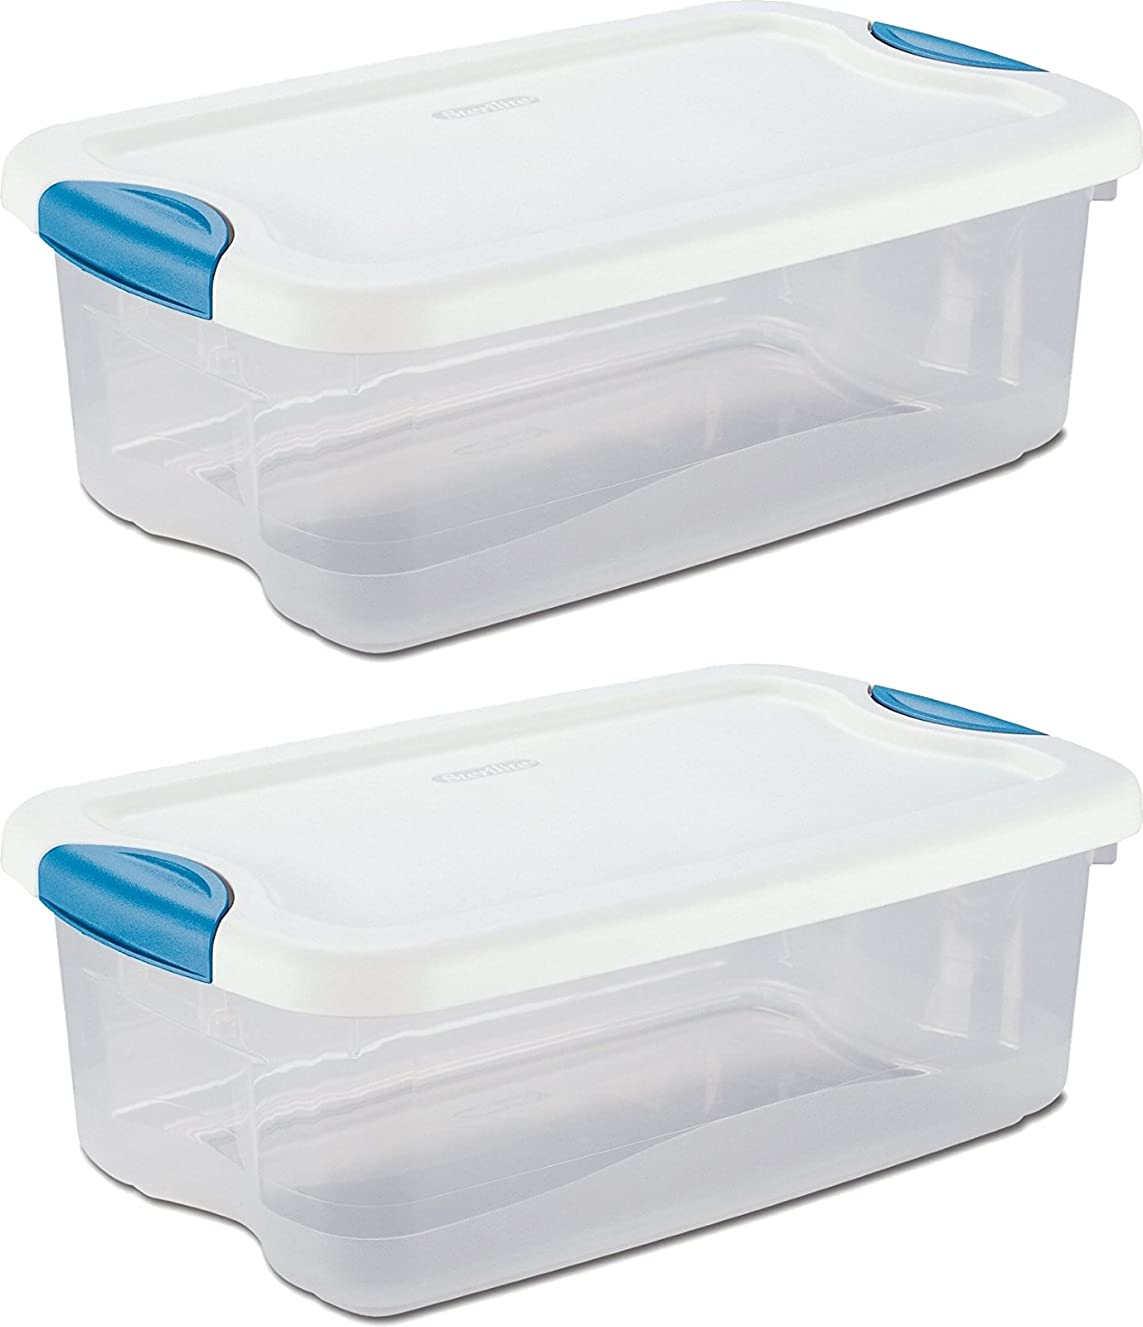 Box Latch White 6 Qt, Pack of 2